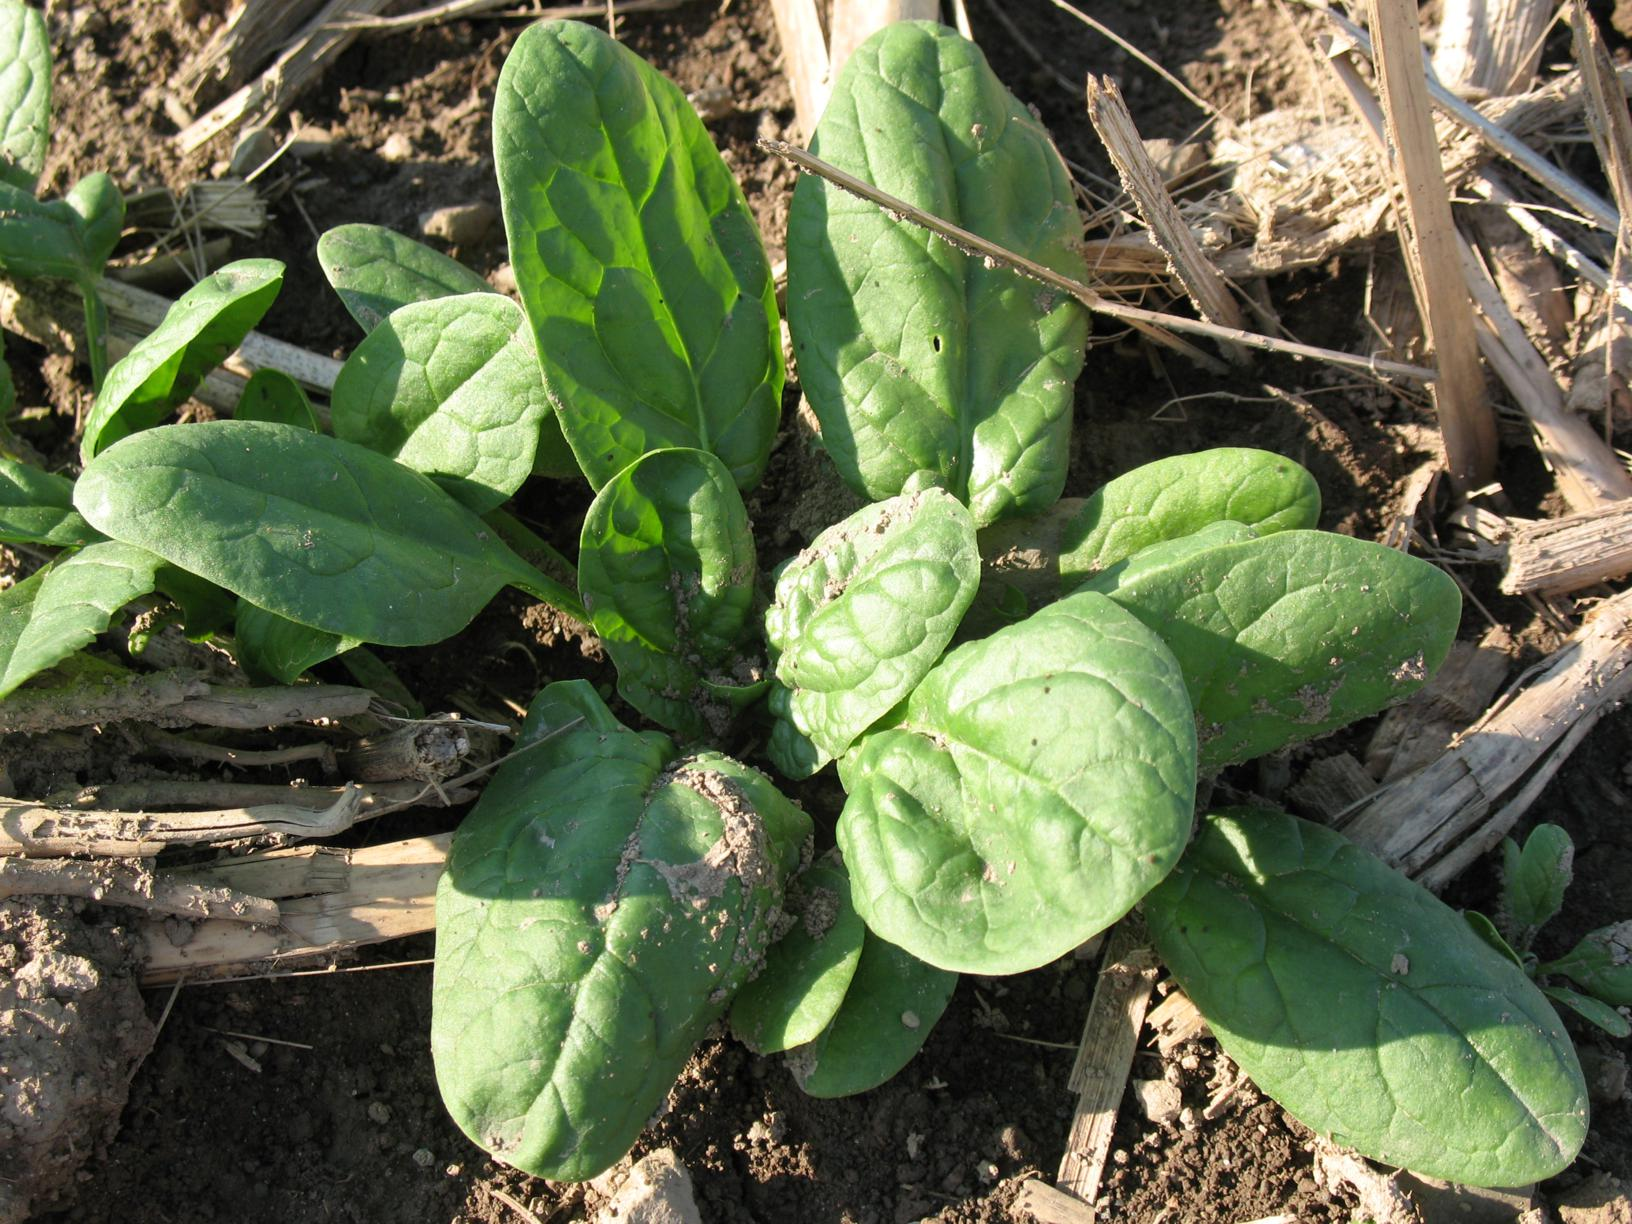 Spinach-almost-ready_1632x1224.jpg